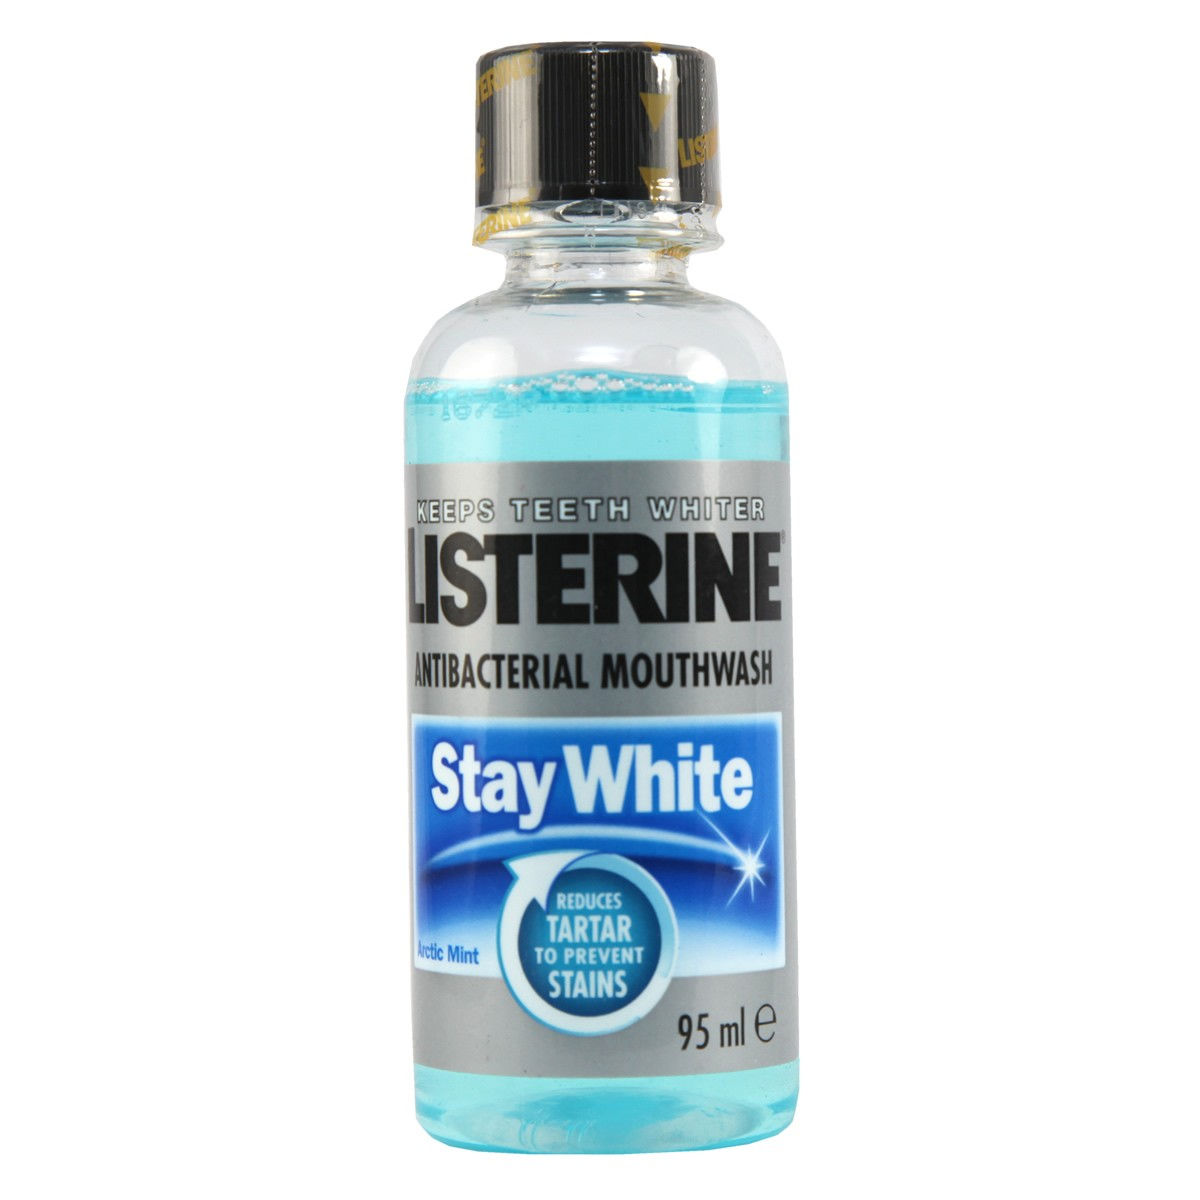 Listerine Stay White Anti-Bacterial Mouthwash - Arctic Mint (Travel Size)